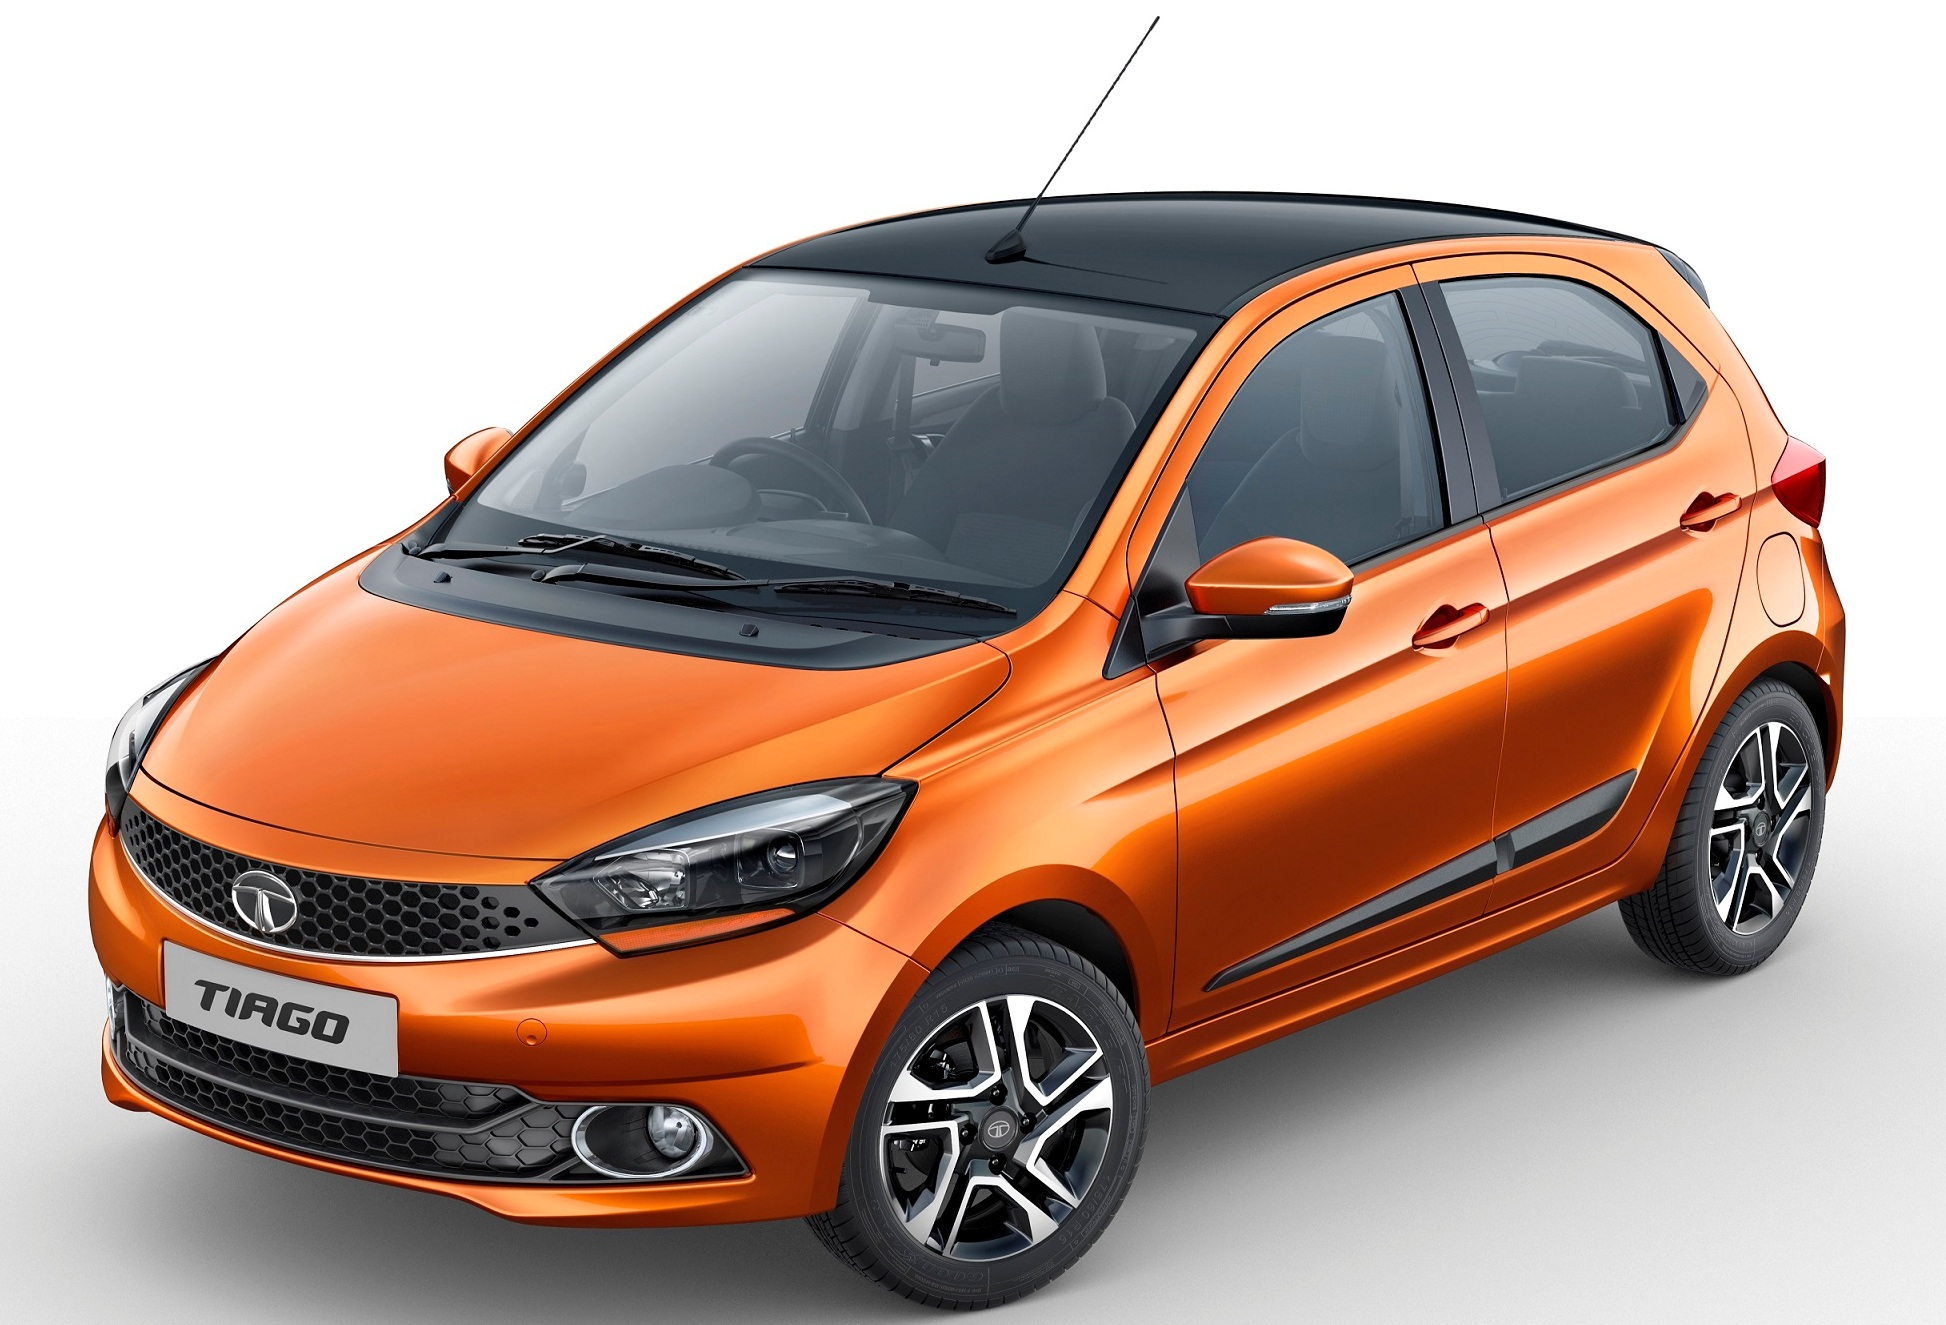 Tata Tiago XZ+ Exterior Orange Canyon with Black Sunroof